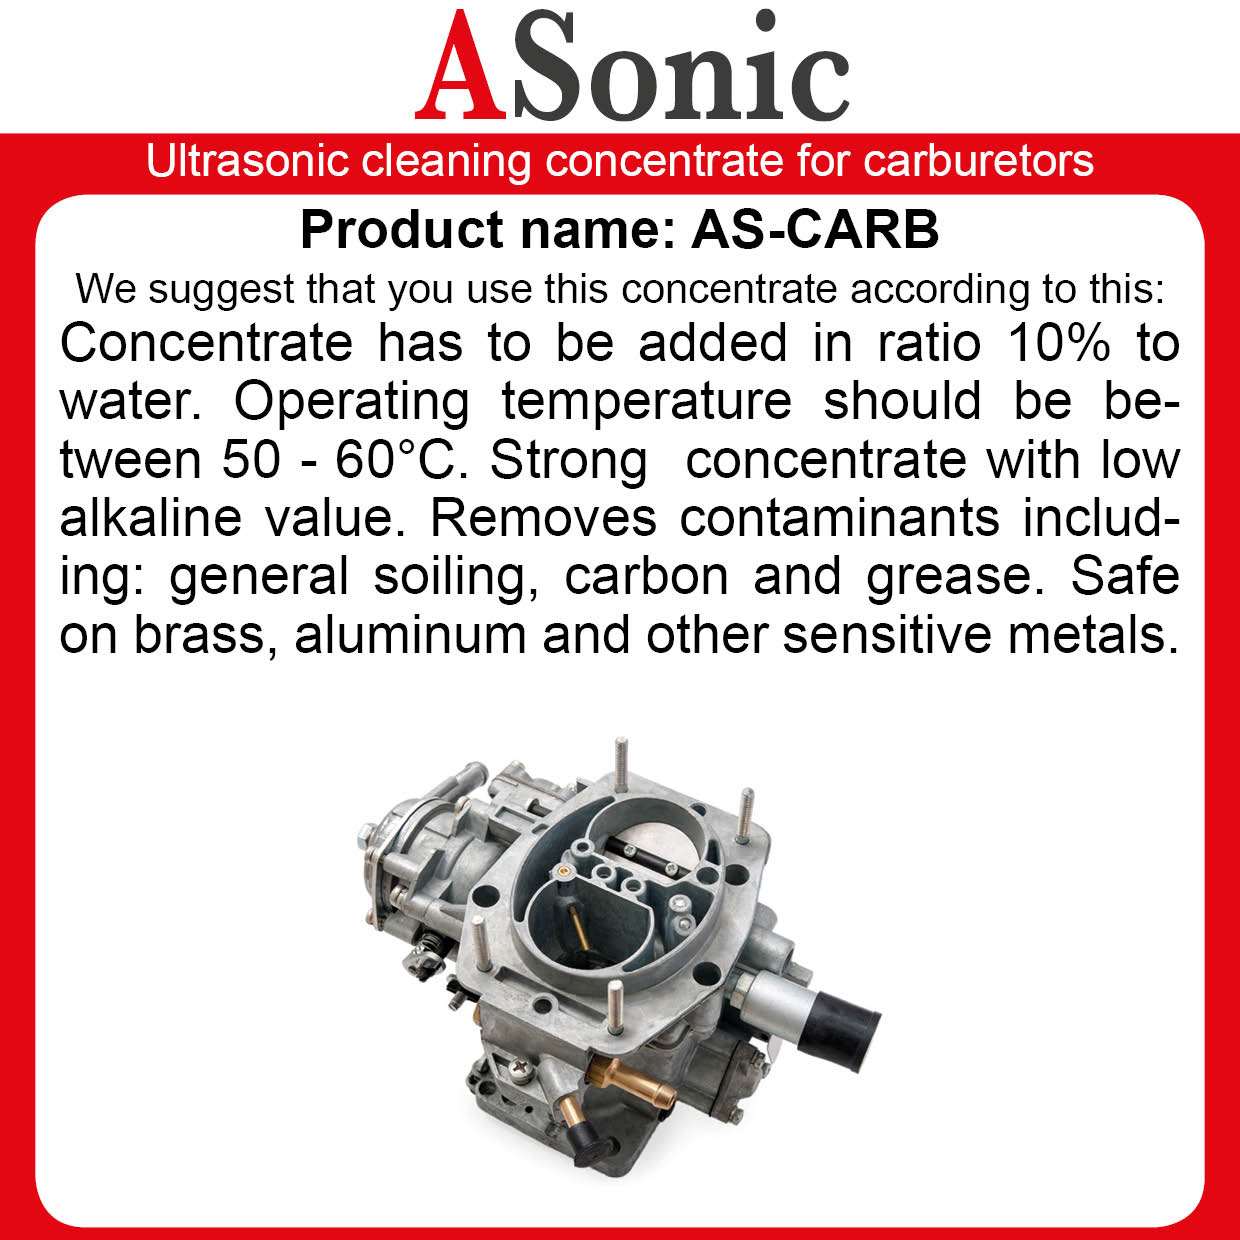 AS-CARB